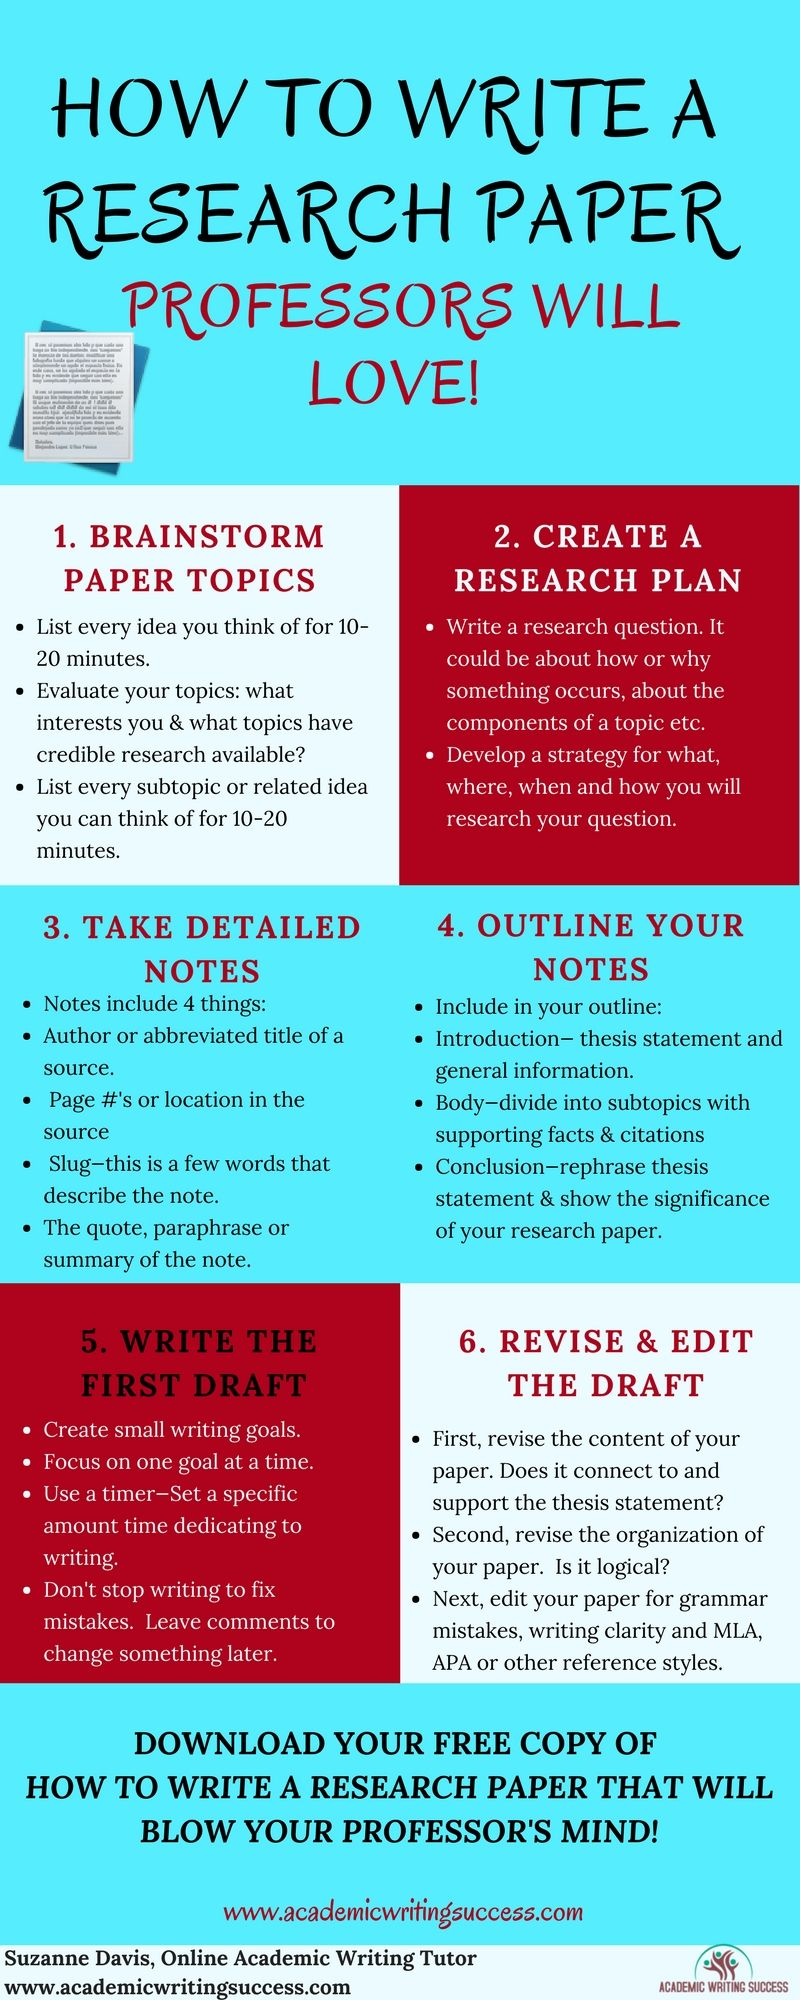 How To Write A Research Paper Professor Will Love Academic Writing Succes College Service Paraphrase Statements Statement